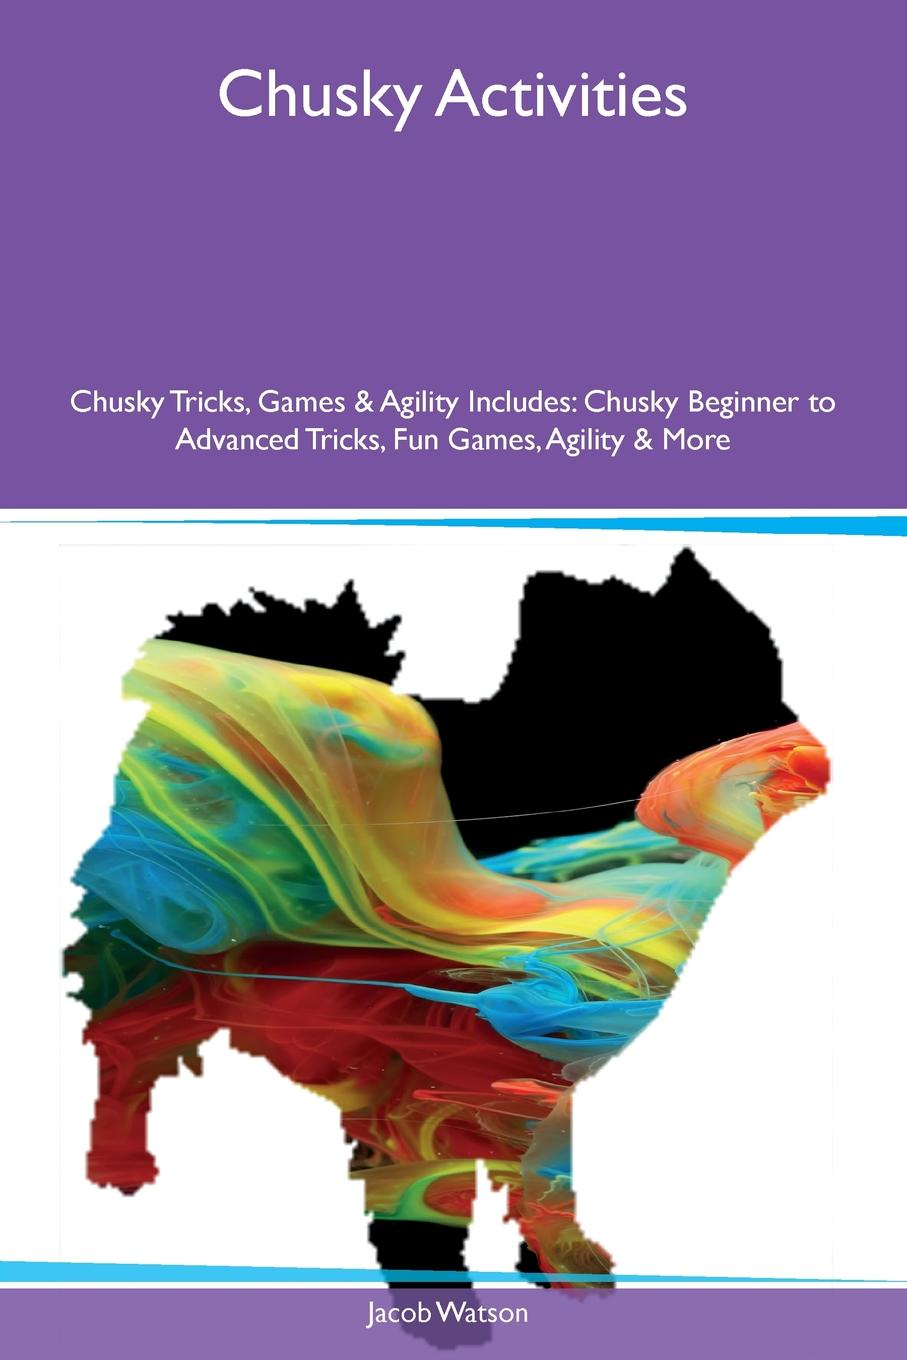 Jacob Watson Chusky Activities Tricks, Games & Agility Includes. Beginner to Advanced Fun Games, More